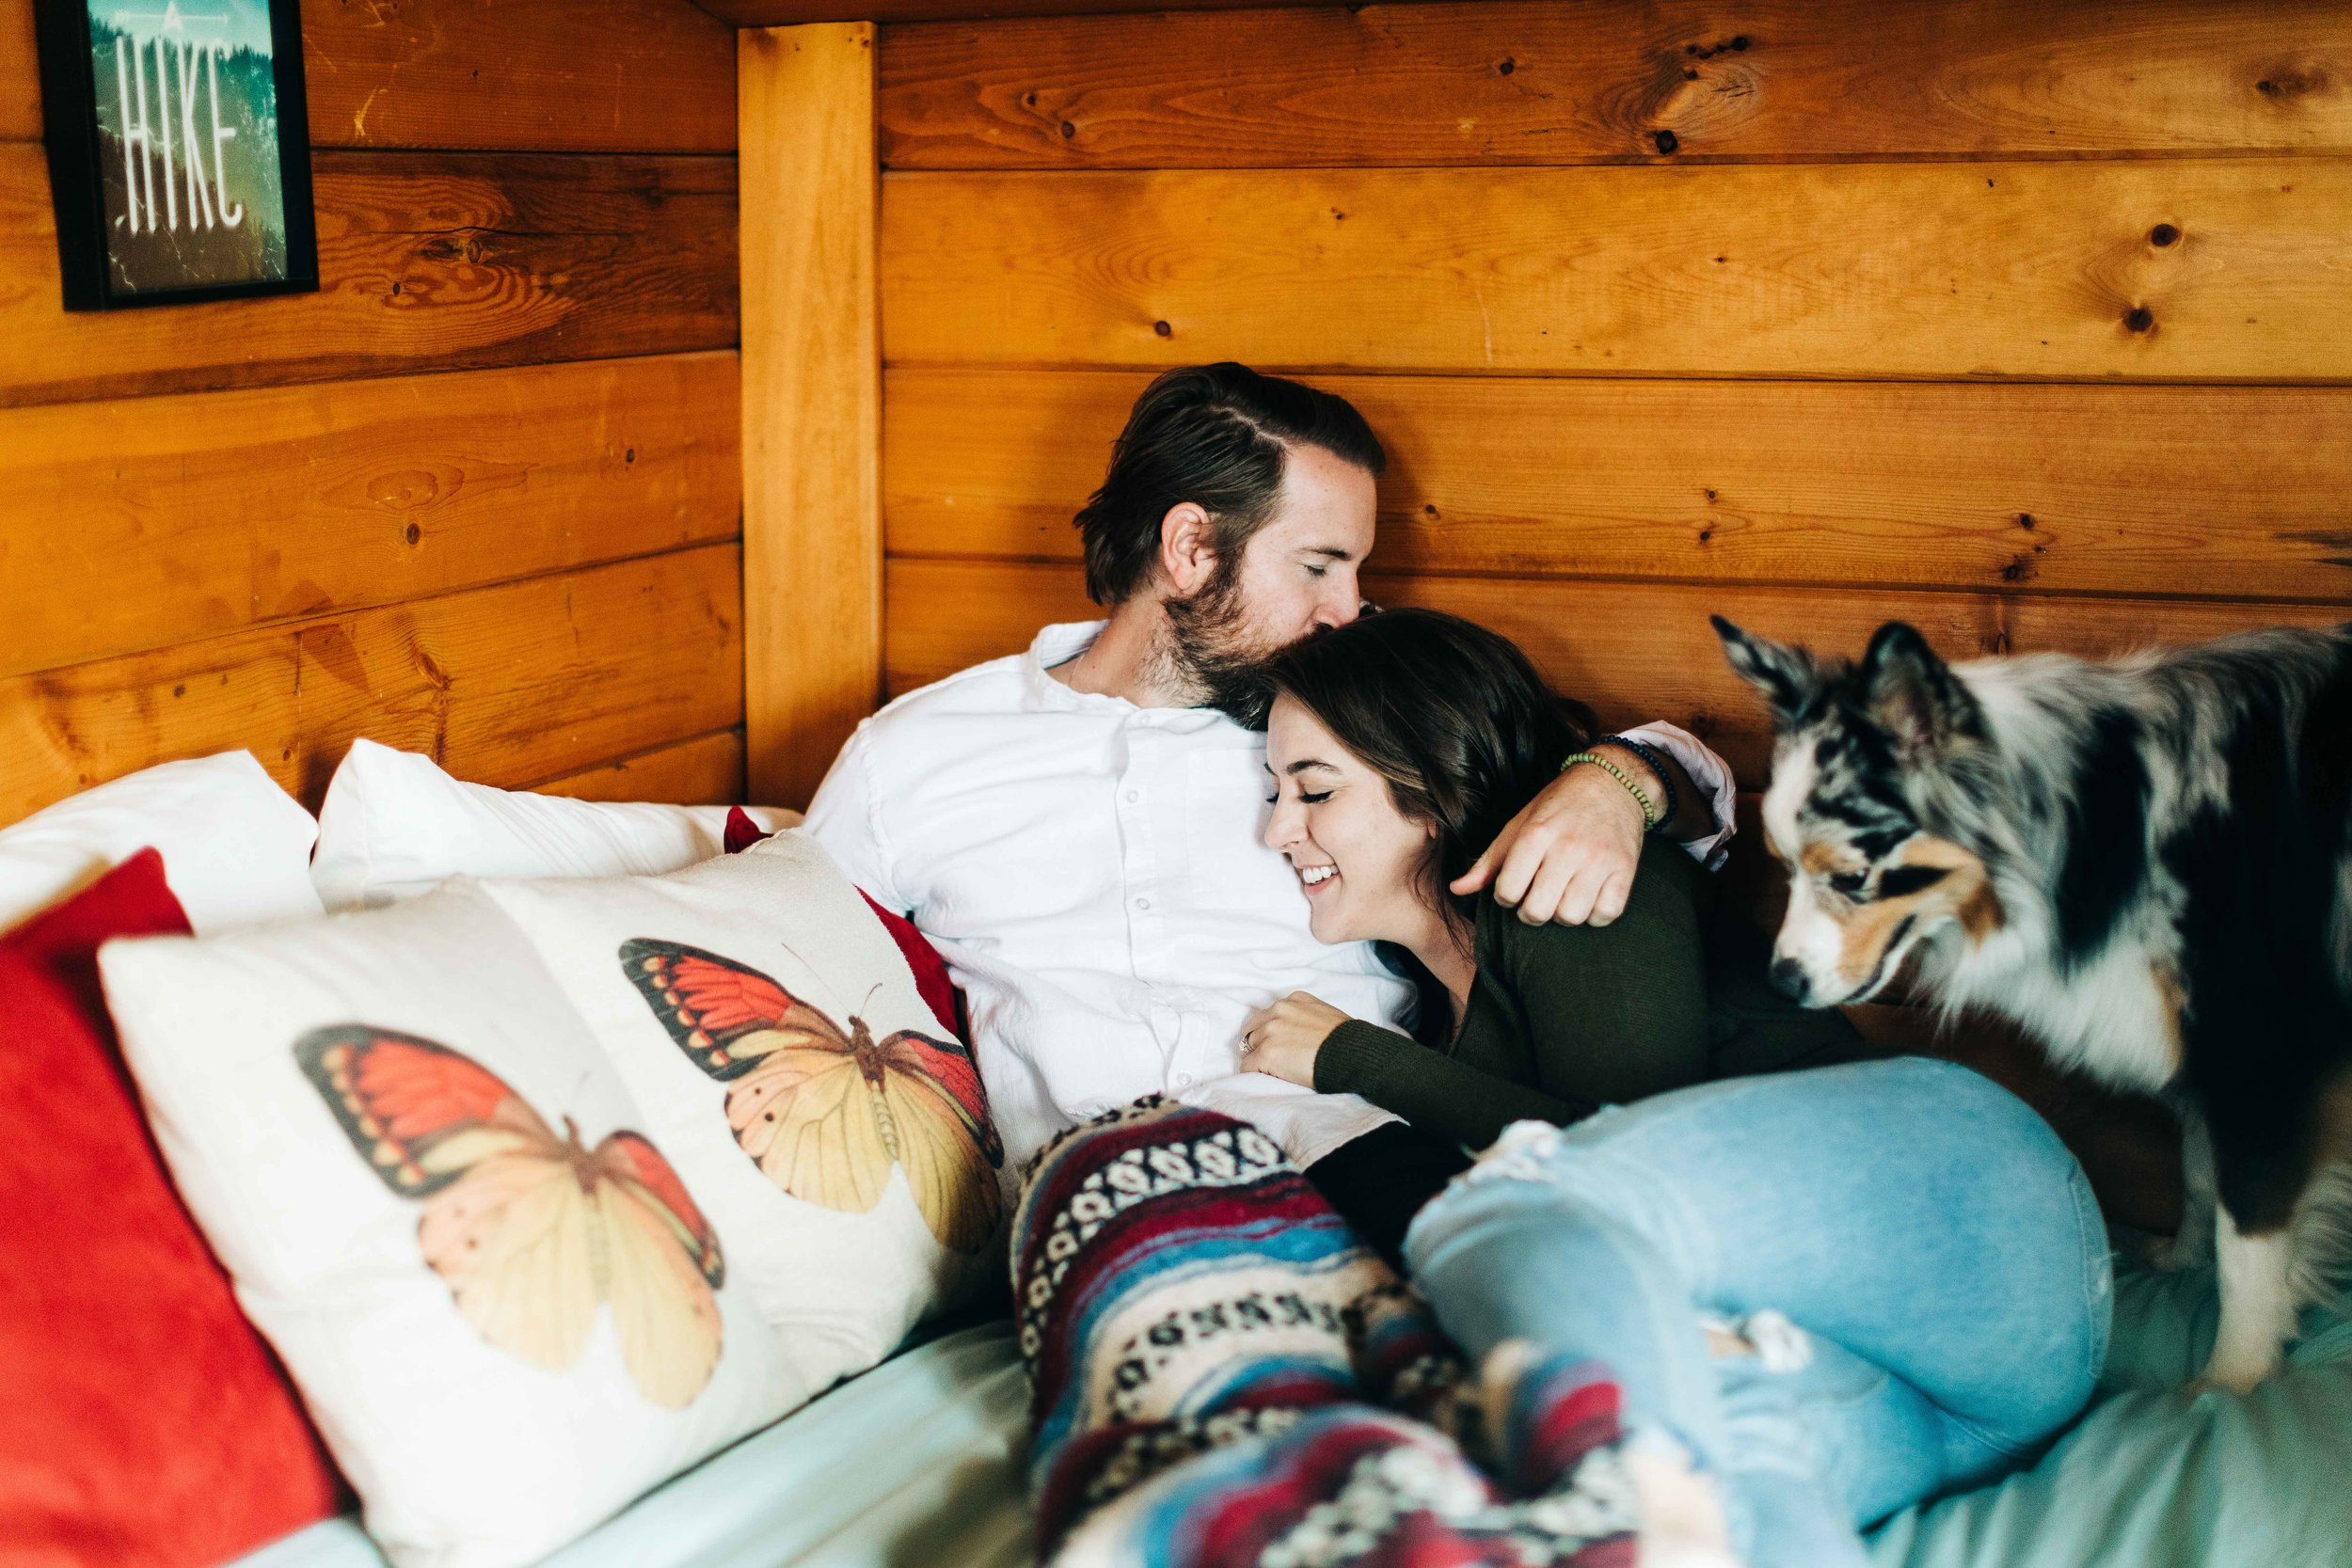 Hayley&Boomer_Joshua-Tree-Engagement-Photos_Tiny-Home_Southern-California-Wedding-Photographer_4